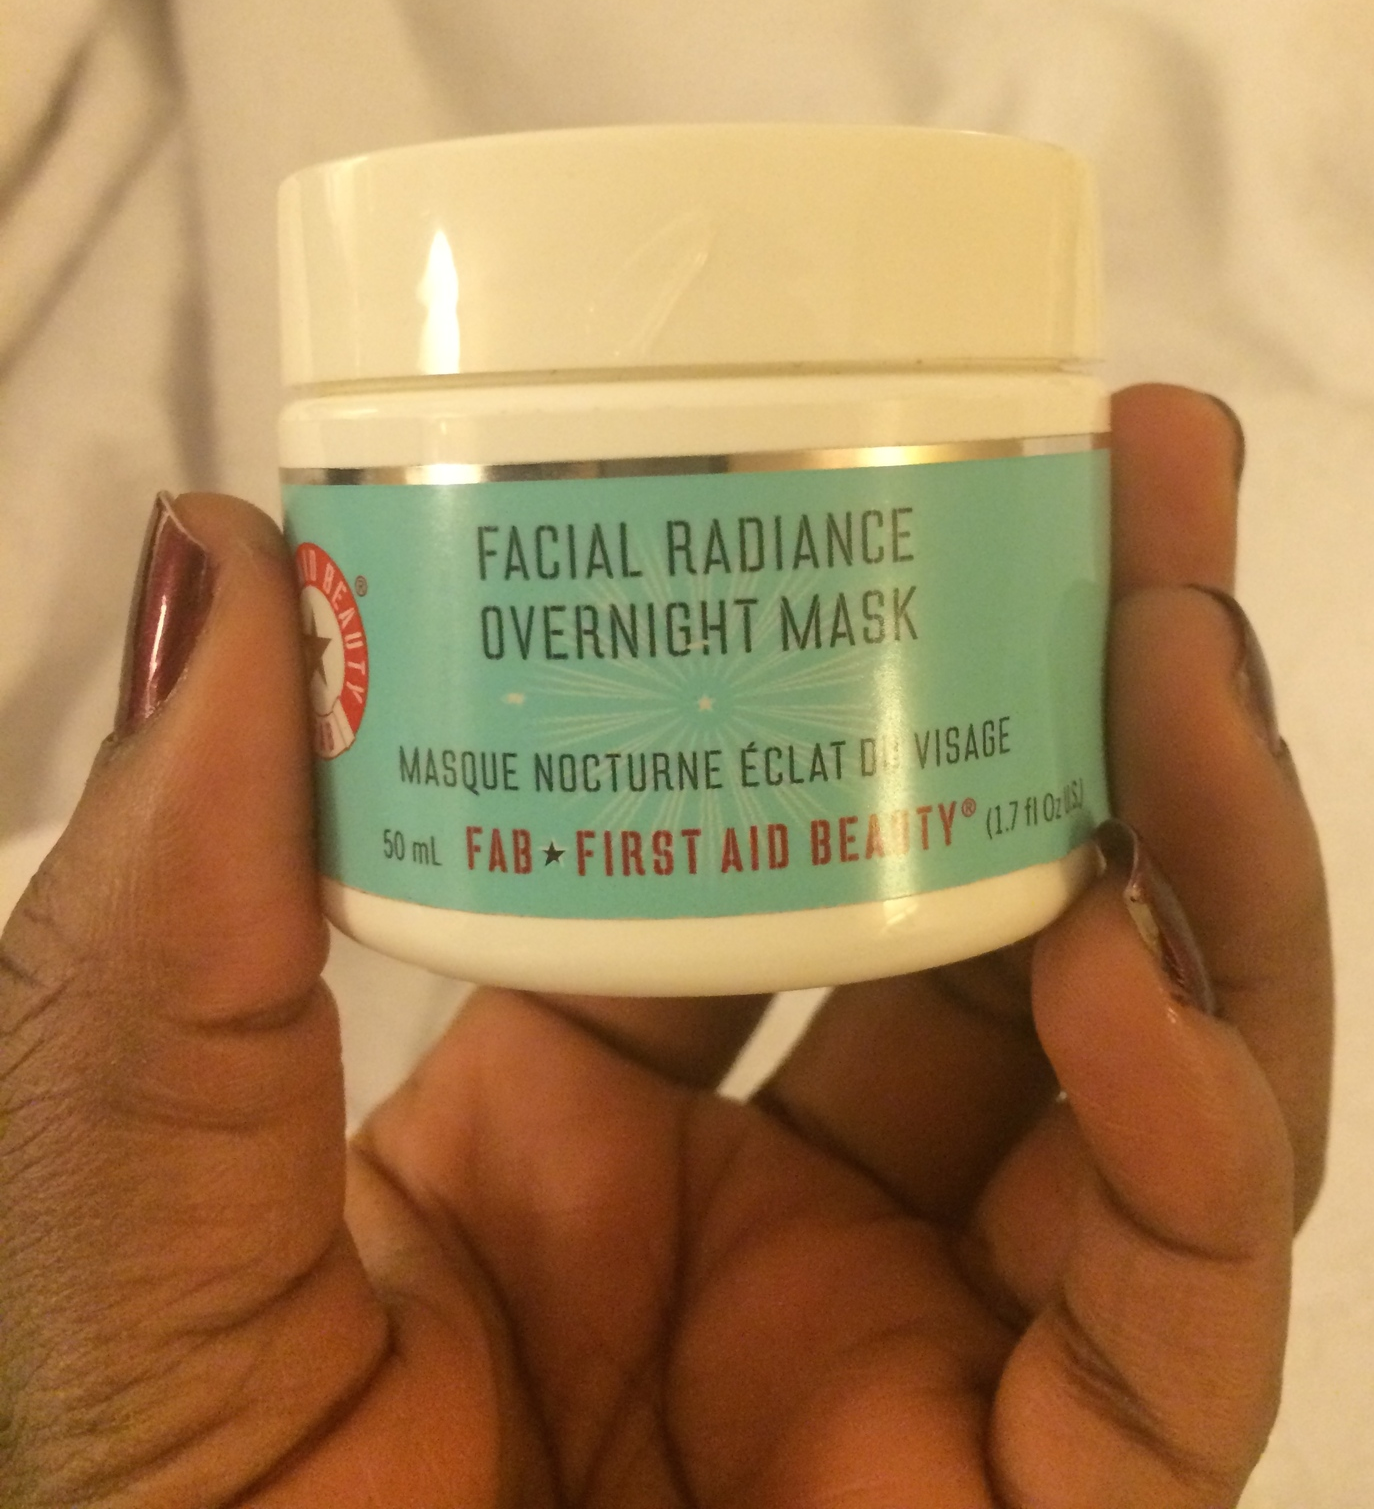 6. Good Skin in a Jar - Facial Radiance Overnight Mask